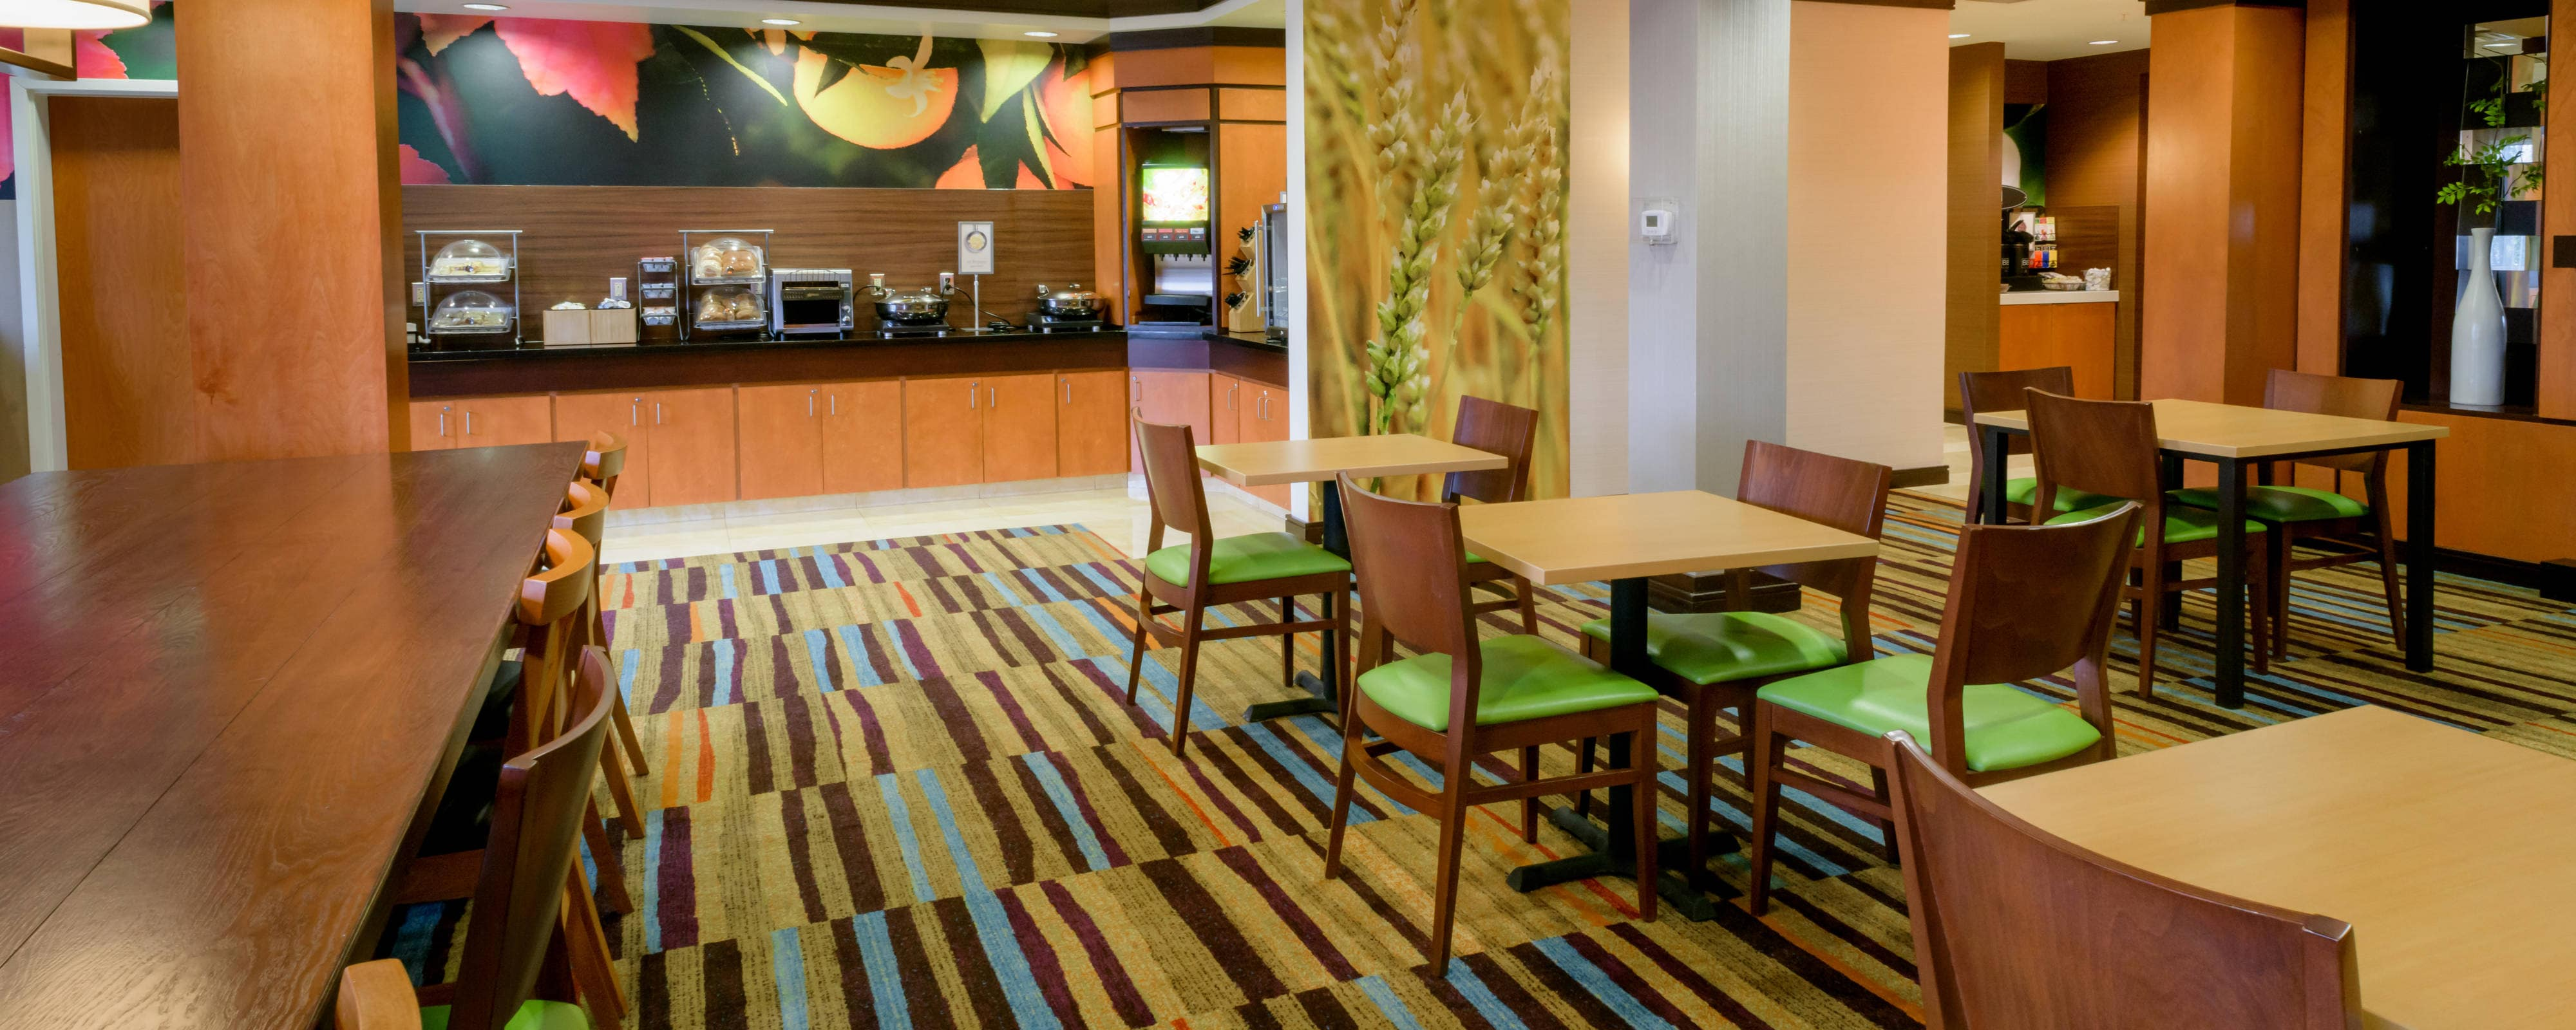 Fairfield Inn & Suites Kennett Square Brandywine Valley, PA: Local ...